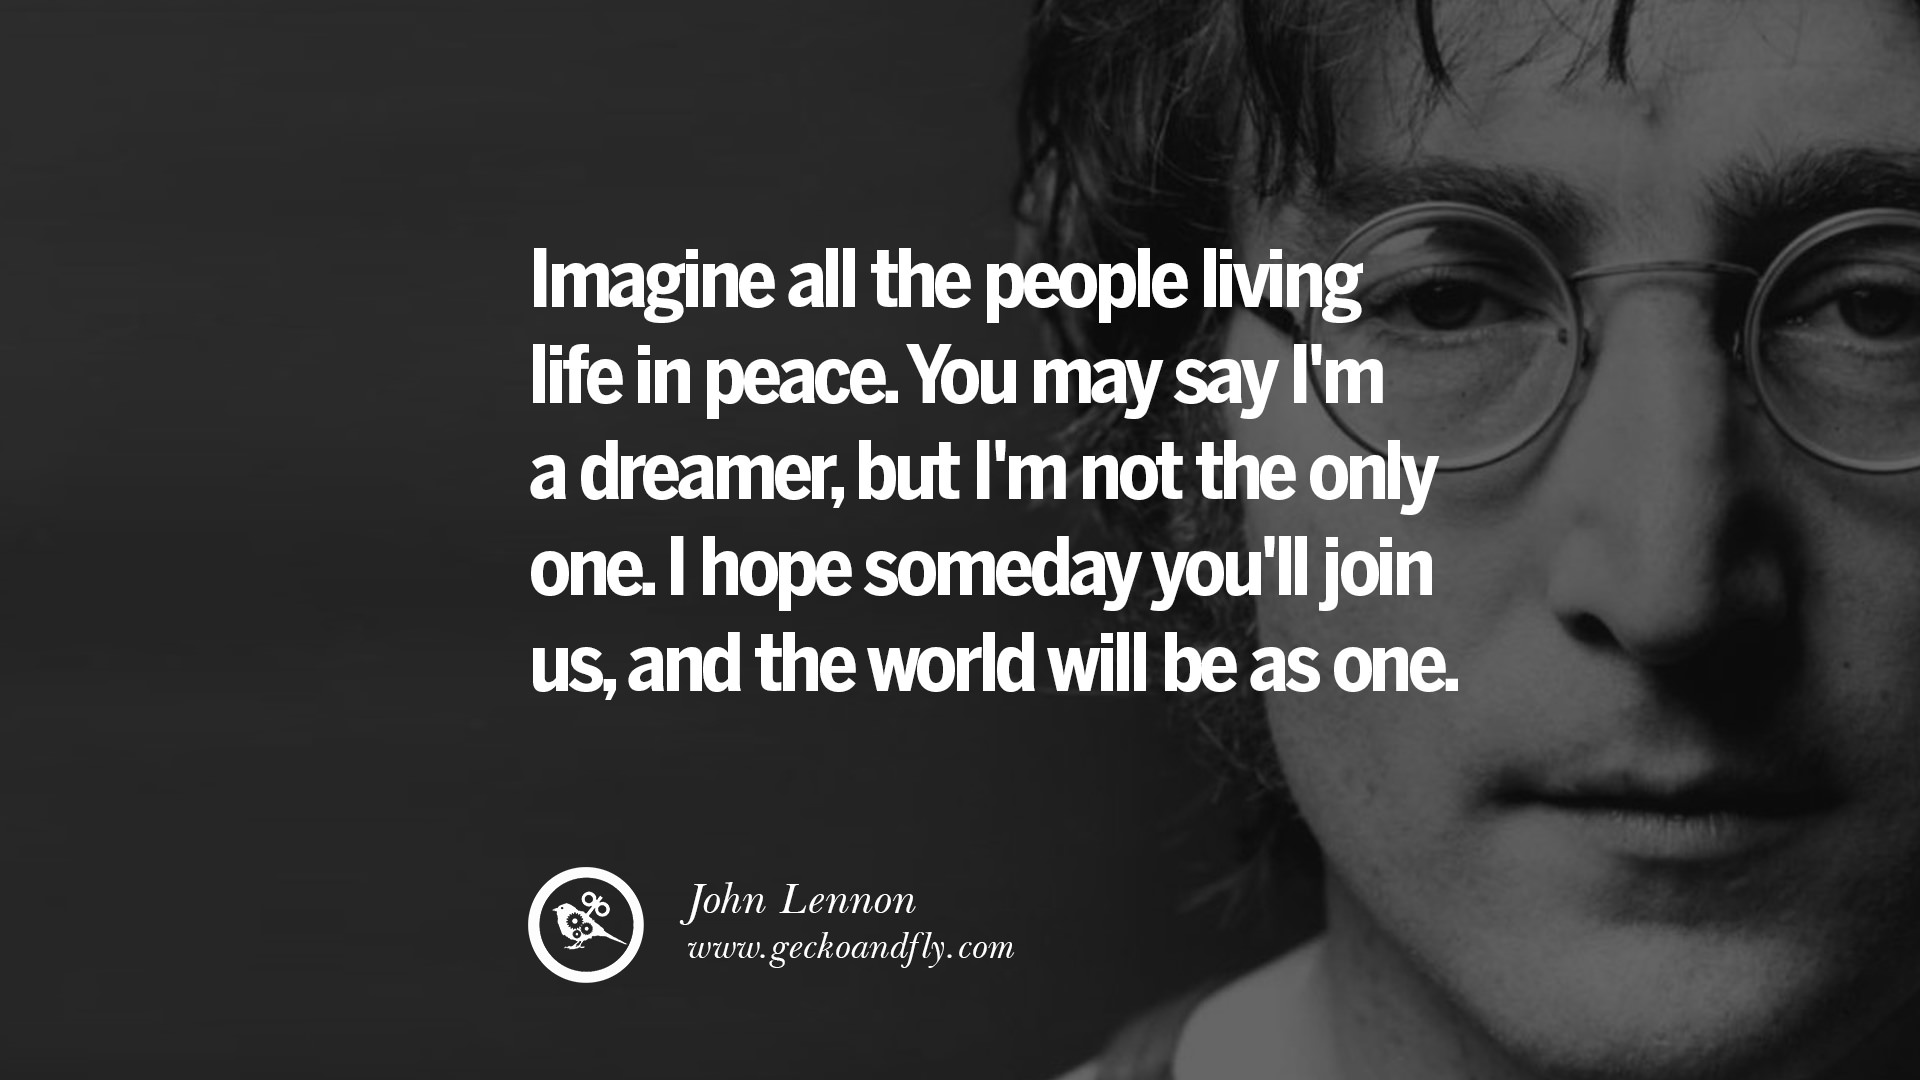 5 John Lennon Quotes On Love, Imagination, Peace And Death